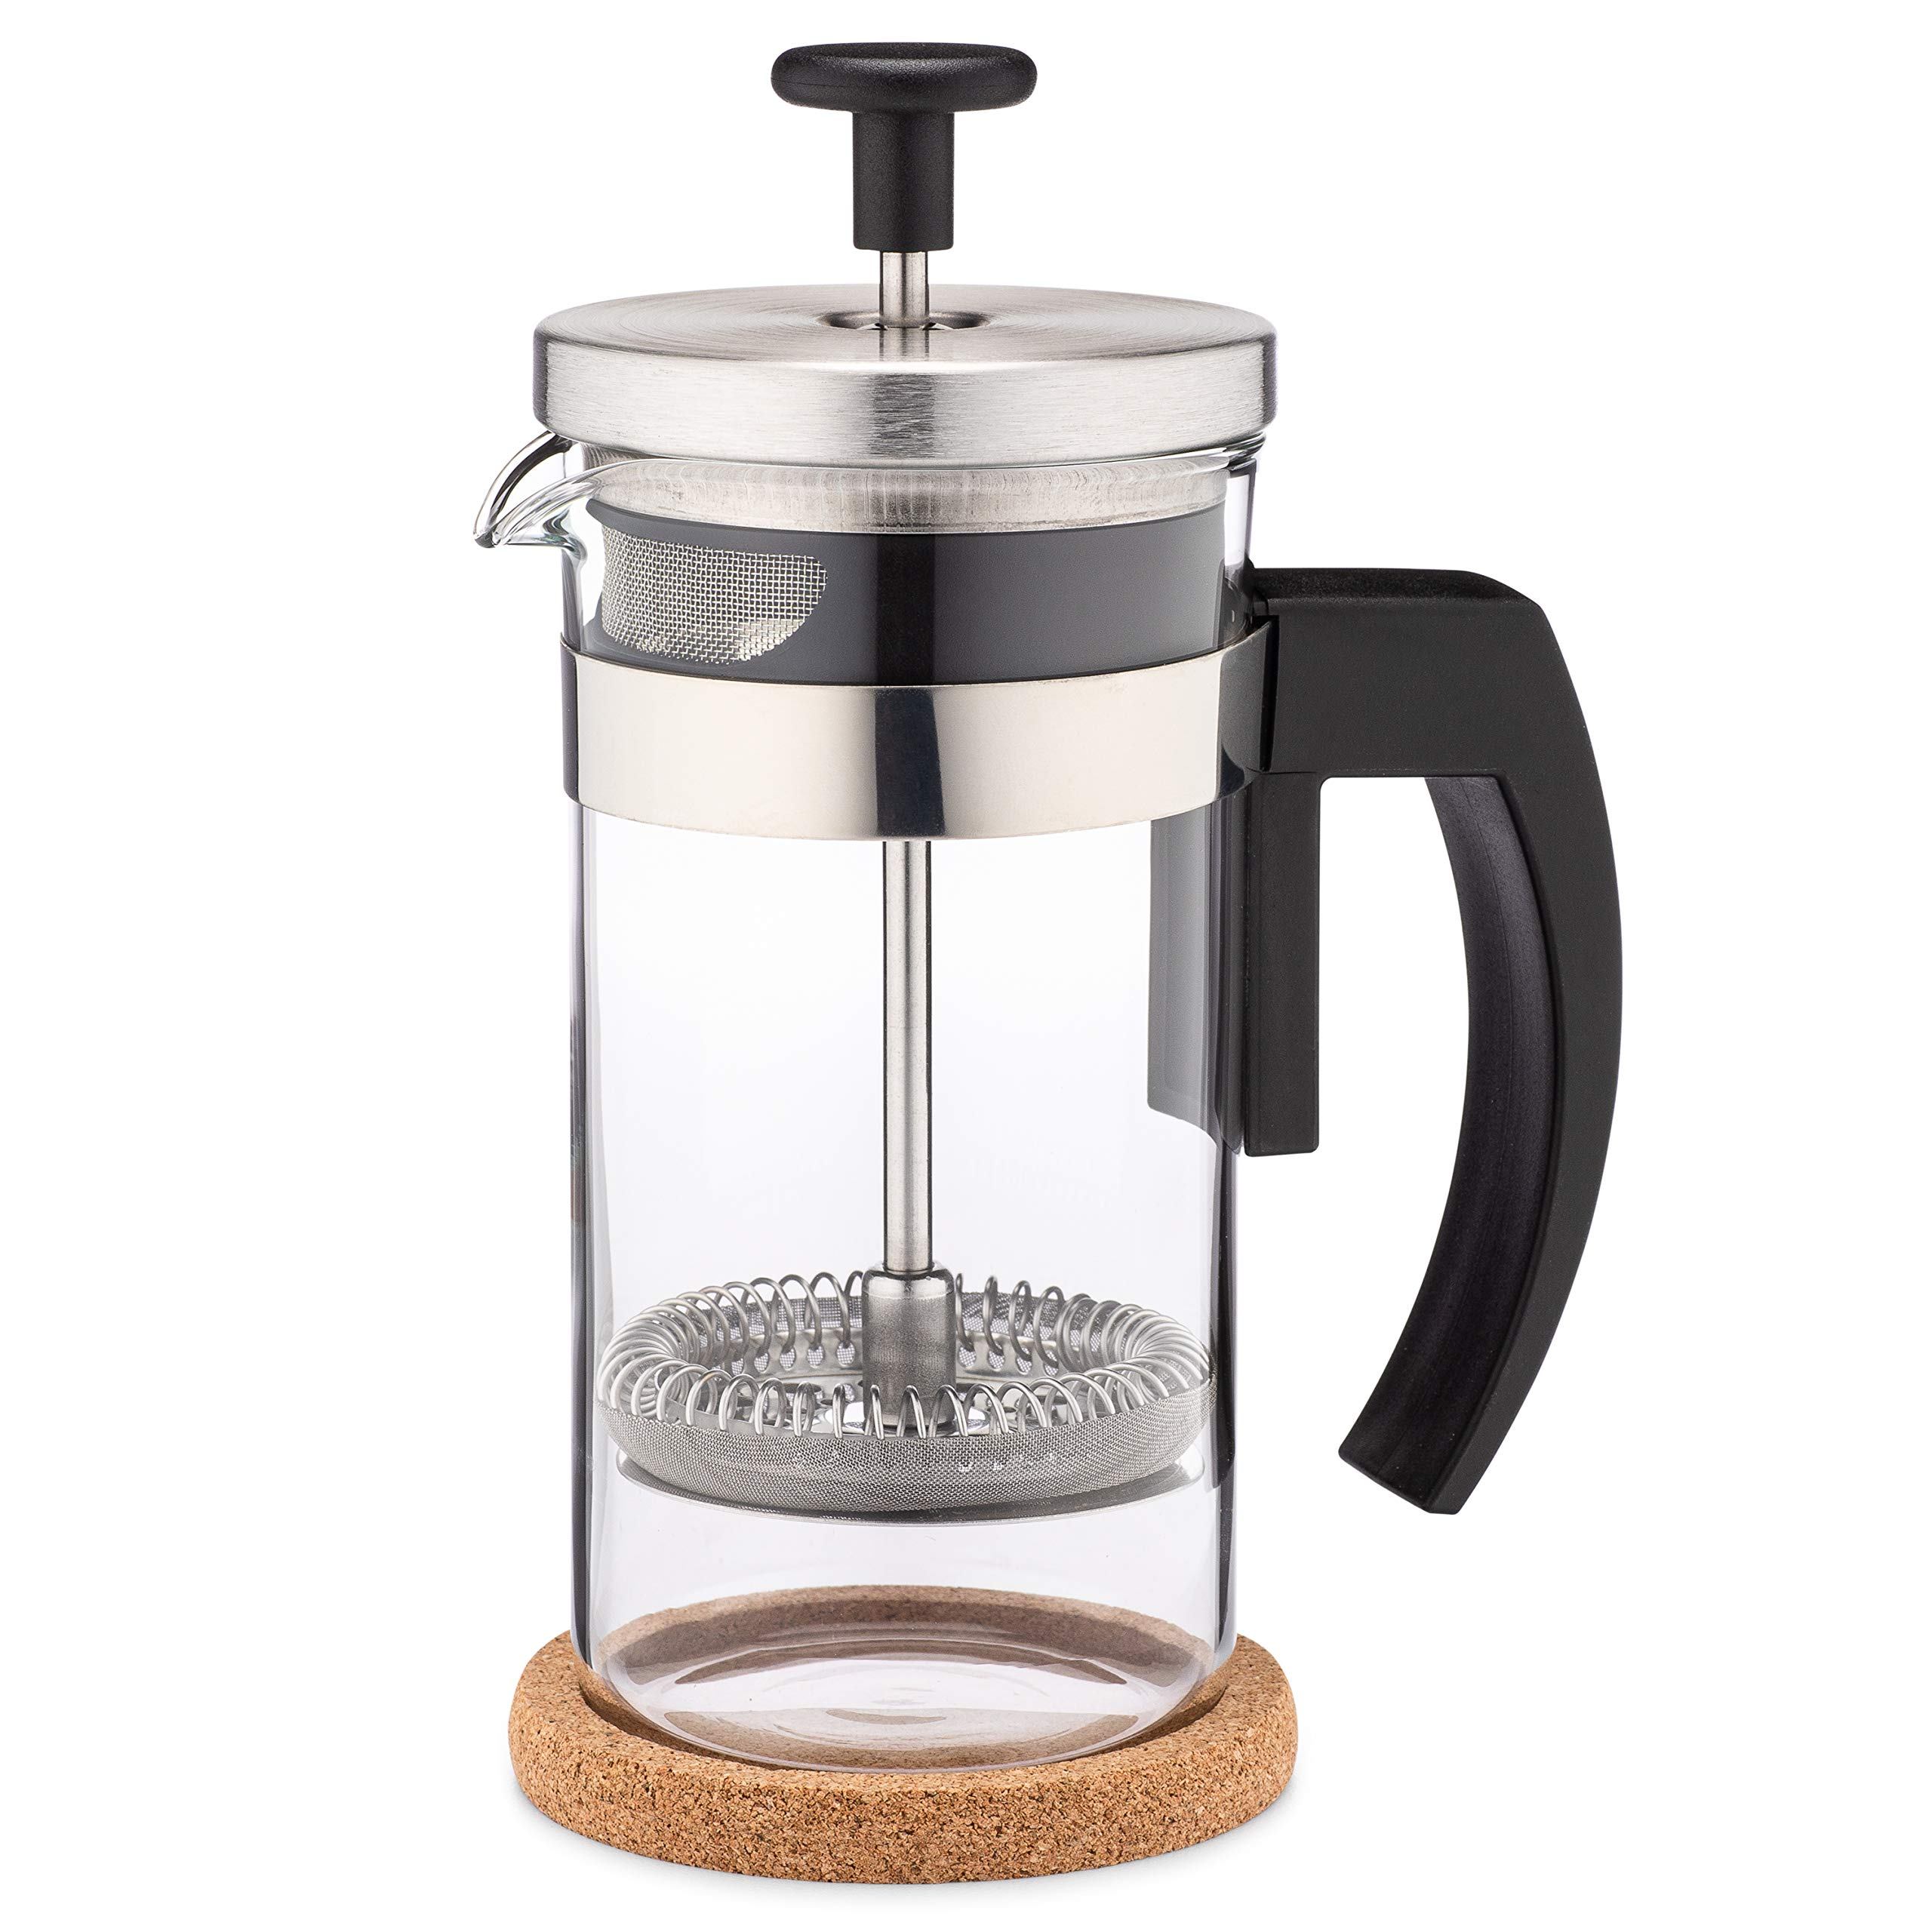 Brillante Small French Press Coffee Maker with 12 Ounce Glass Beaker - Single Serve Cafetiere and Tea Maker BR-CP1-350 by Br BRILLANTE